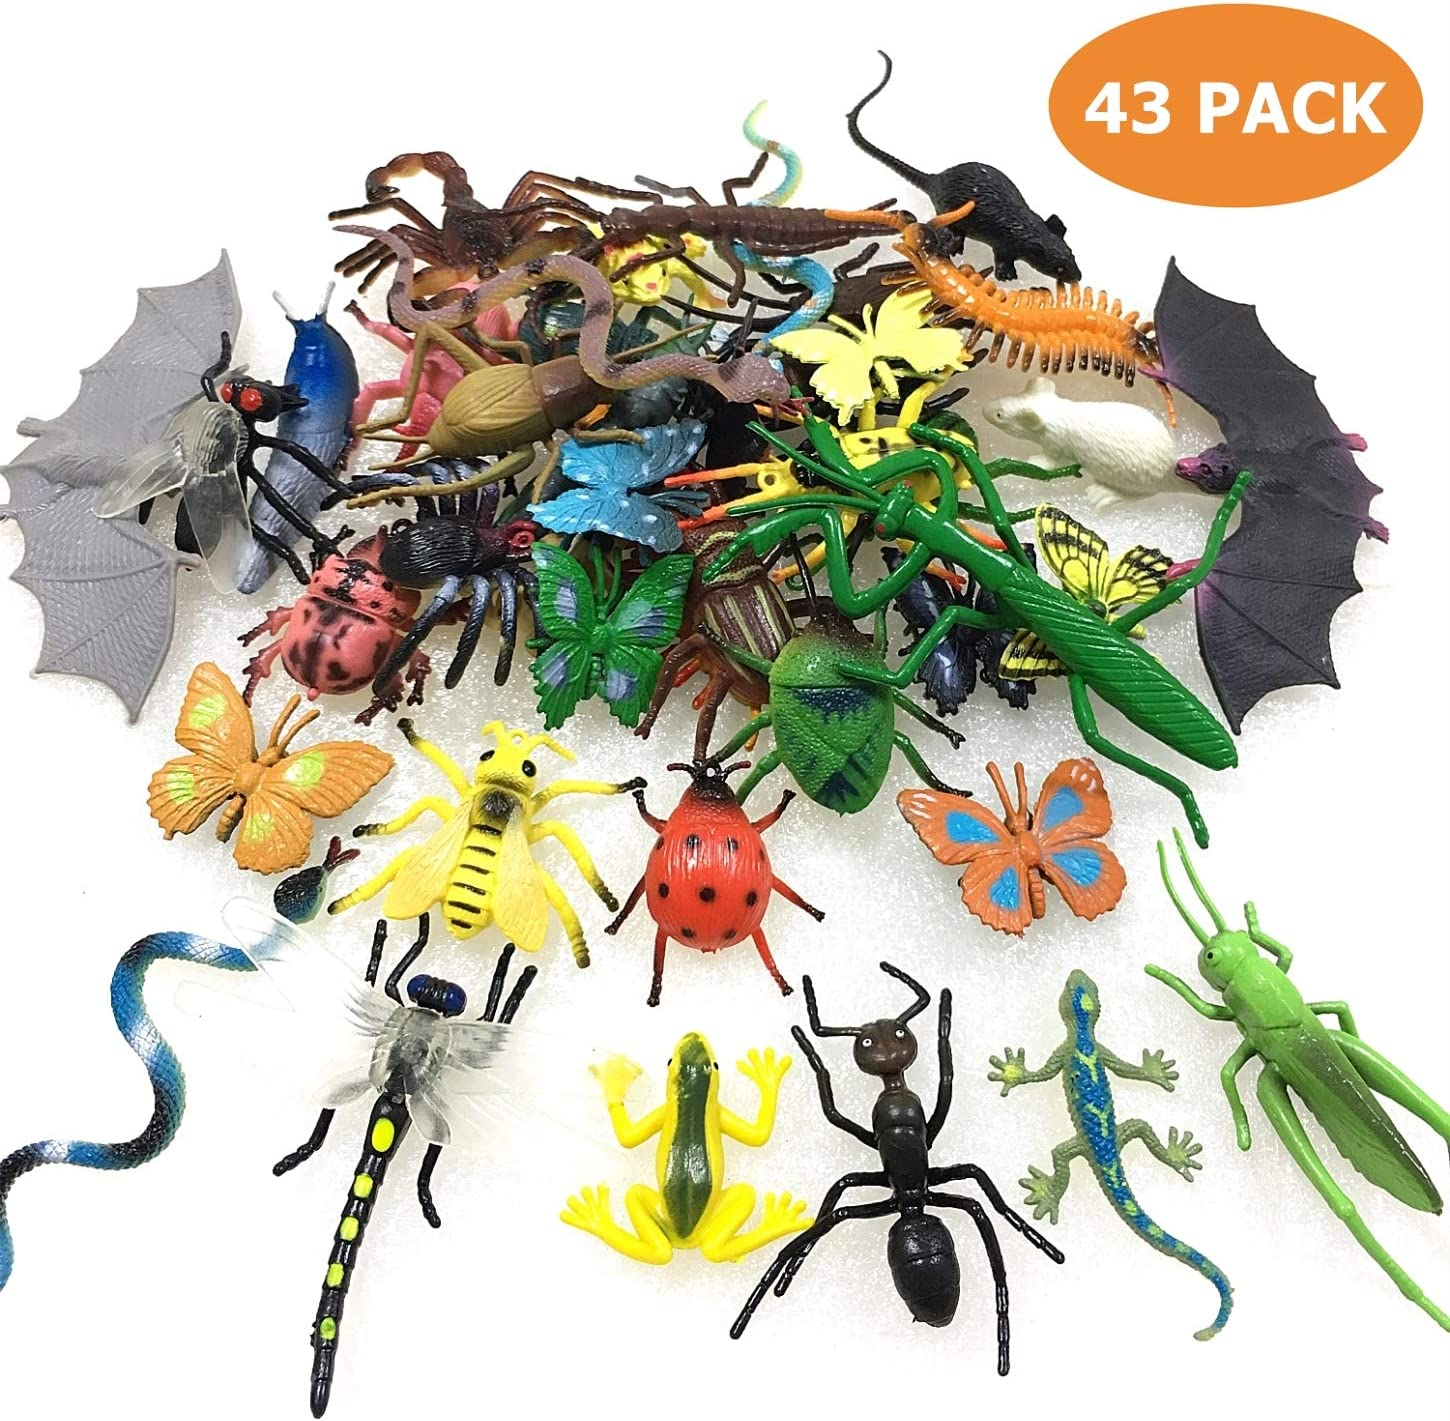 43 Pack Fake Bugs Mini Realistic Insects Toys for Kids Toddler Children's Birthday Gift Halloween Treats Bugs Insects Goody Bag Filler